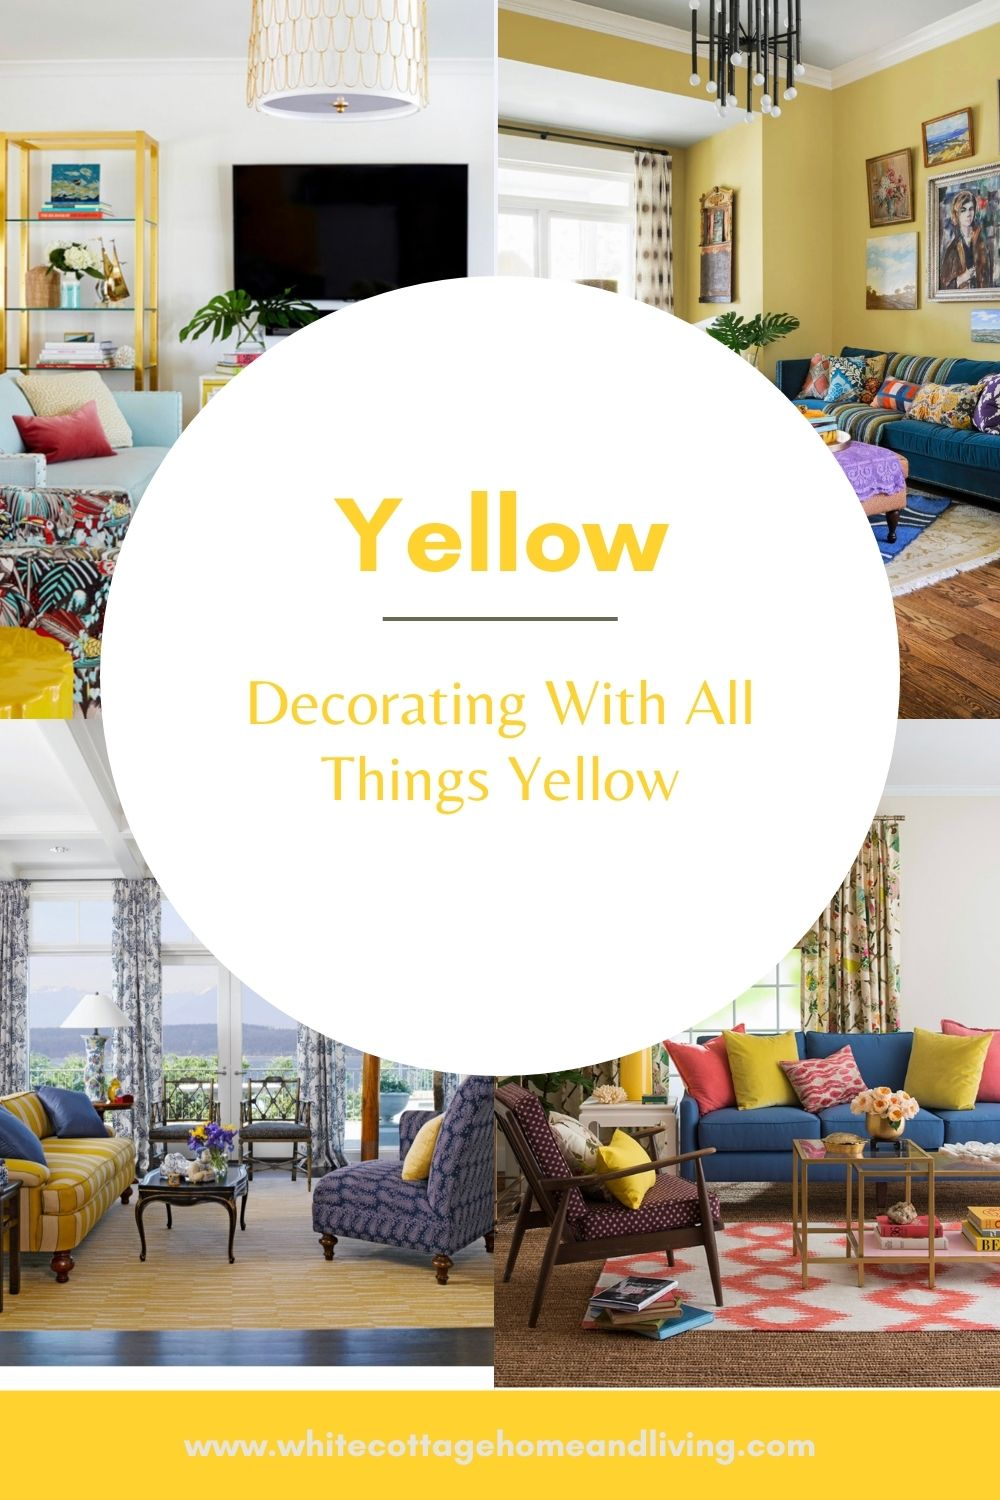 Decorating with All Things Yellow~ White Cottage Home & Living